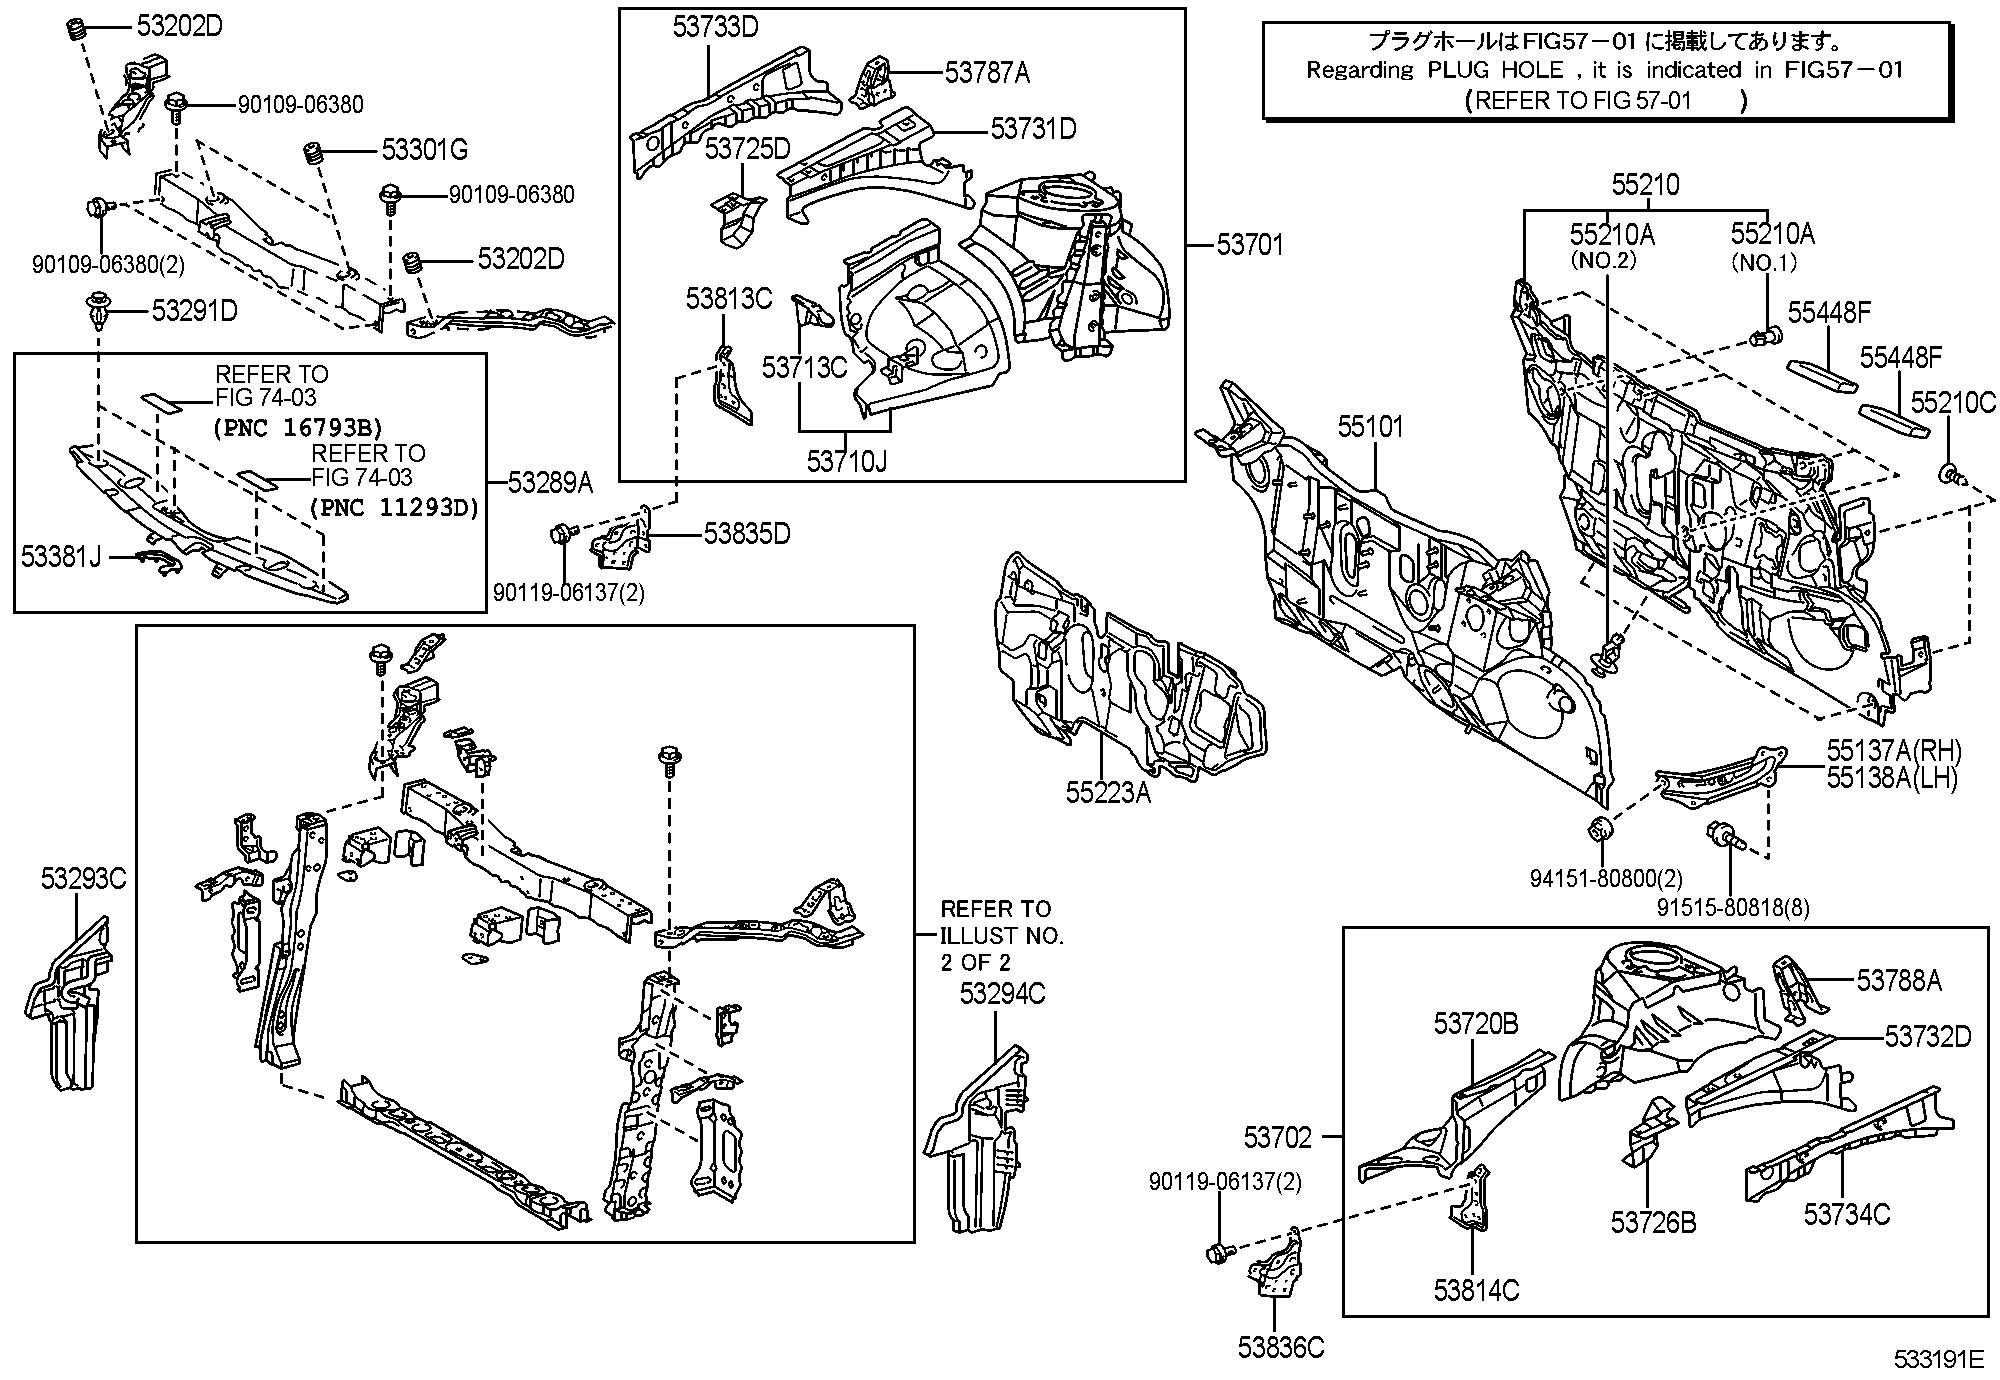 Toyota Prius Engine Fuse Box Diagram. Toyota. Auto Fuse